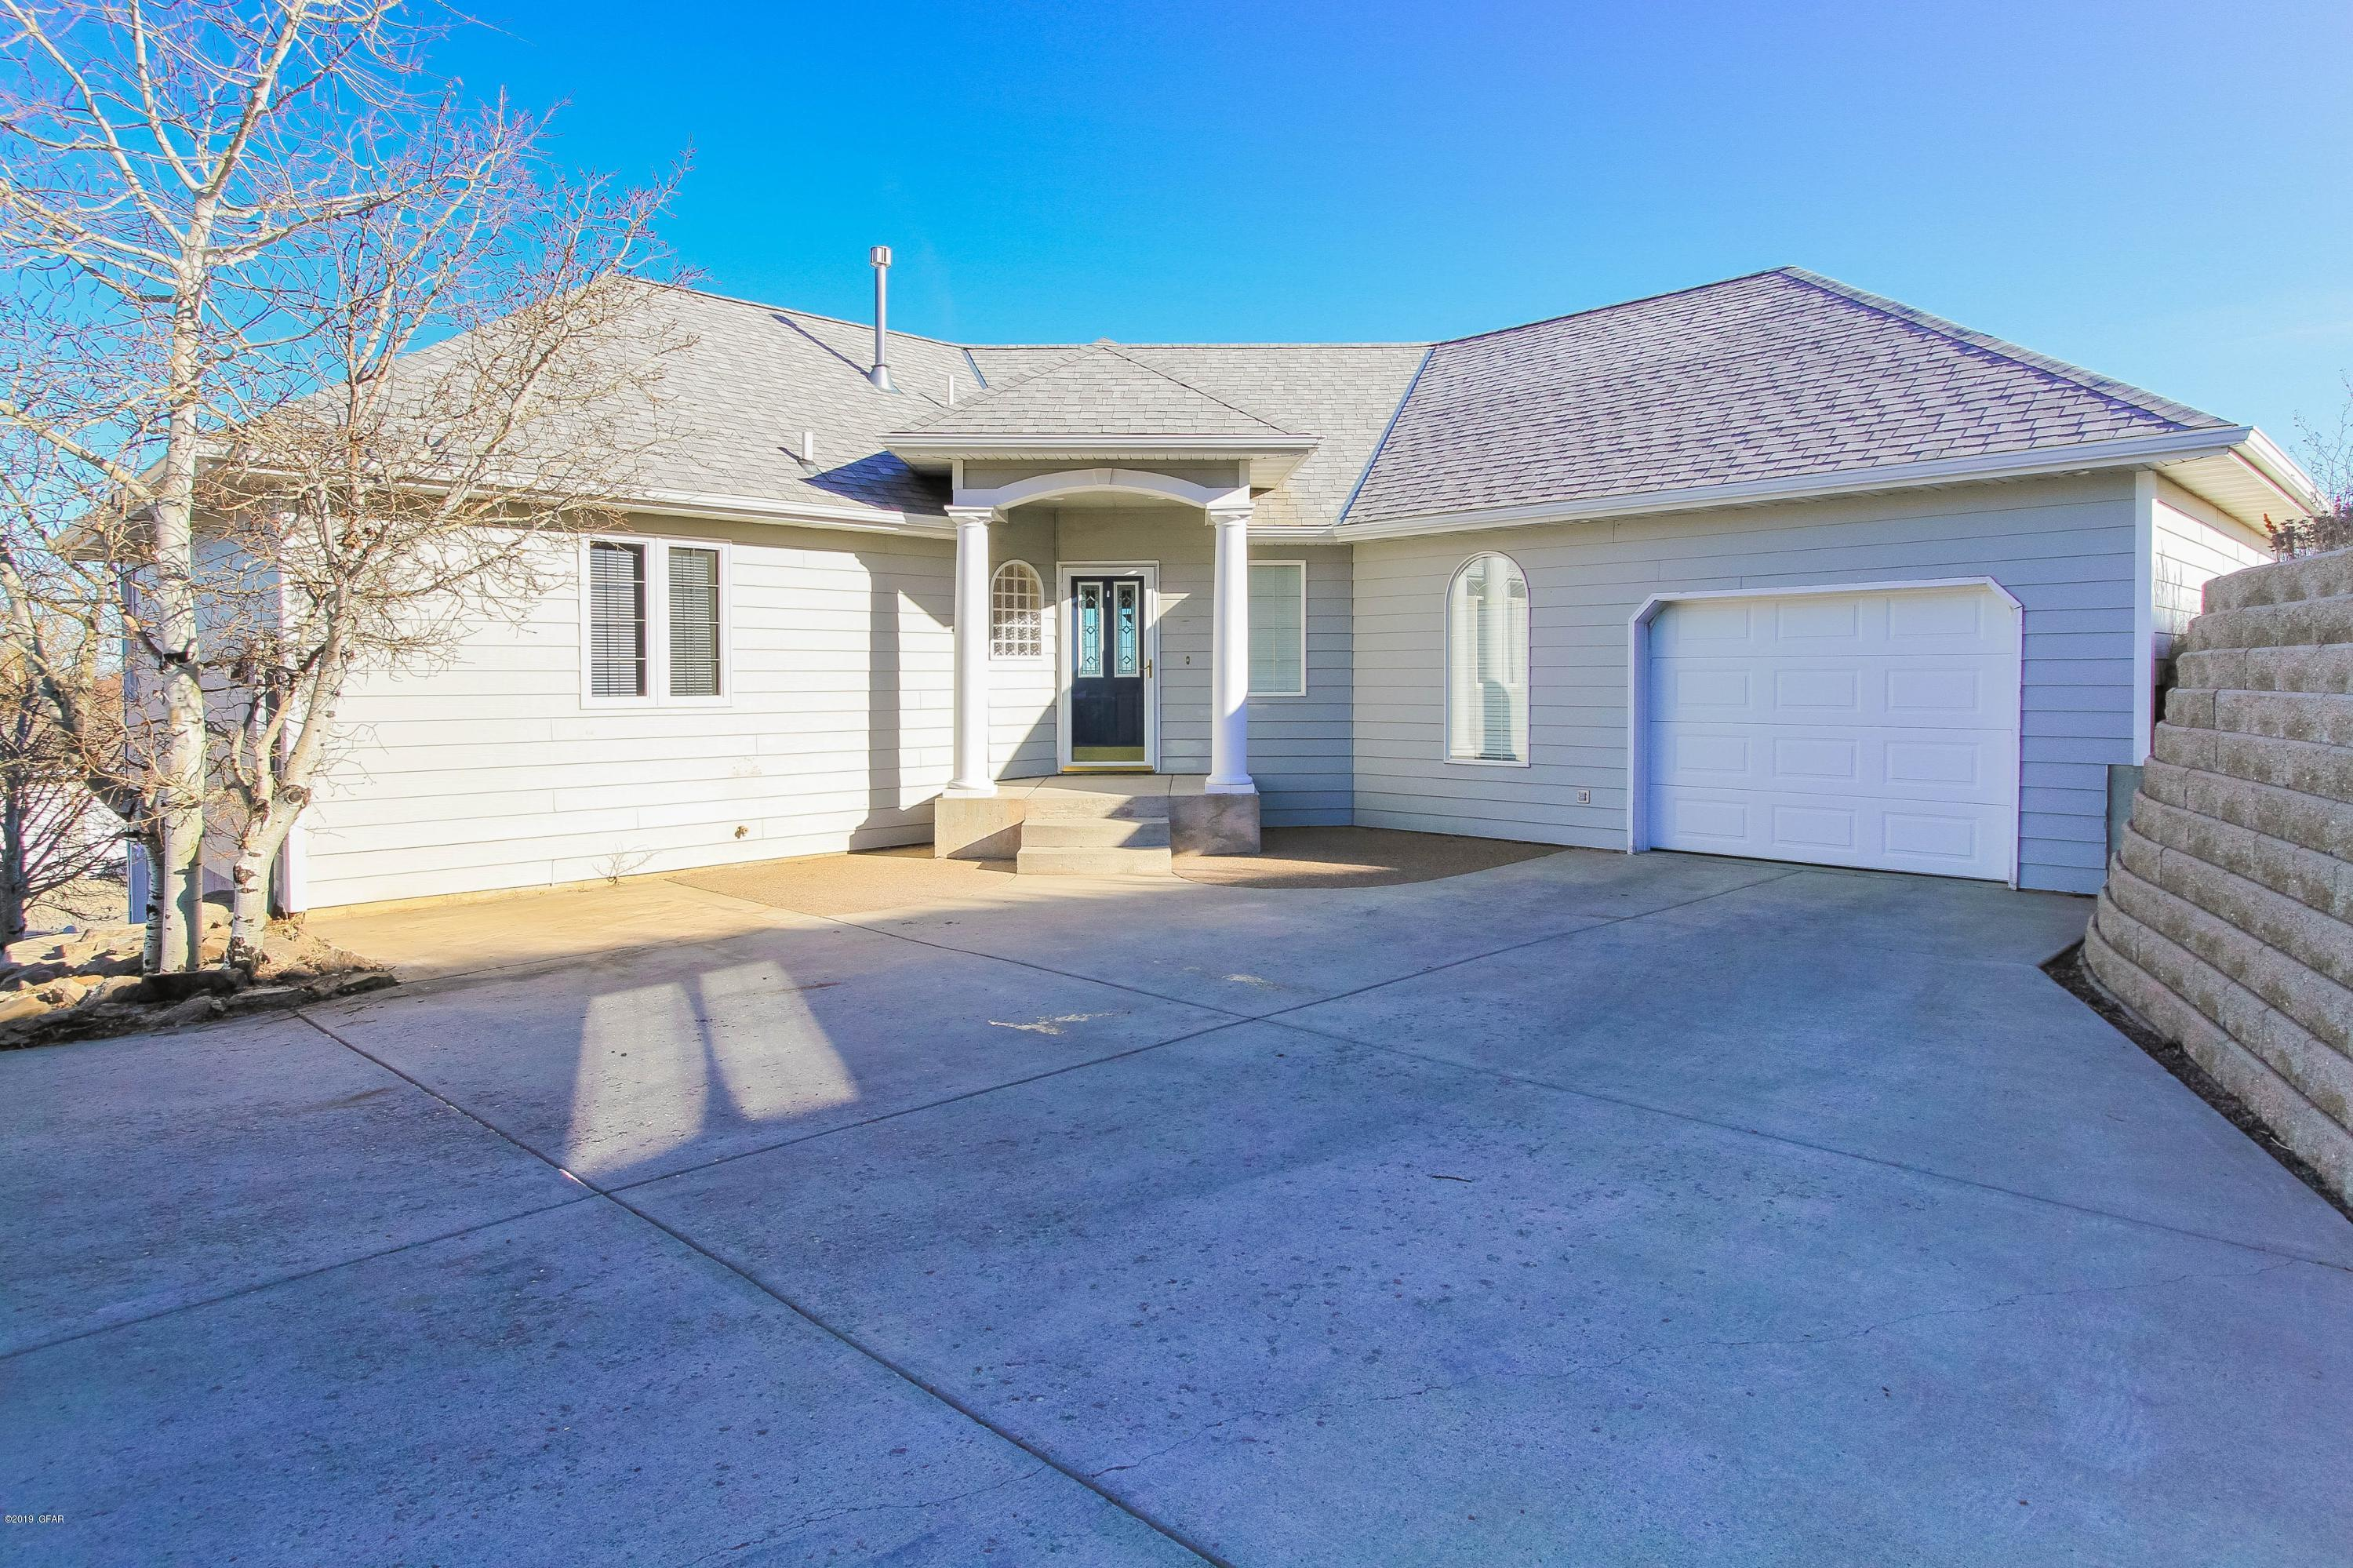 Home for Sale at 2100 Poplar Drive in Great Falls, Montana